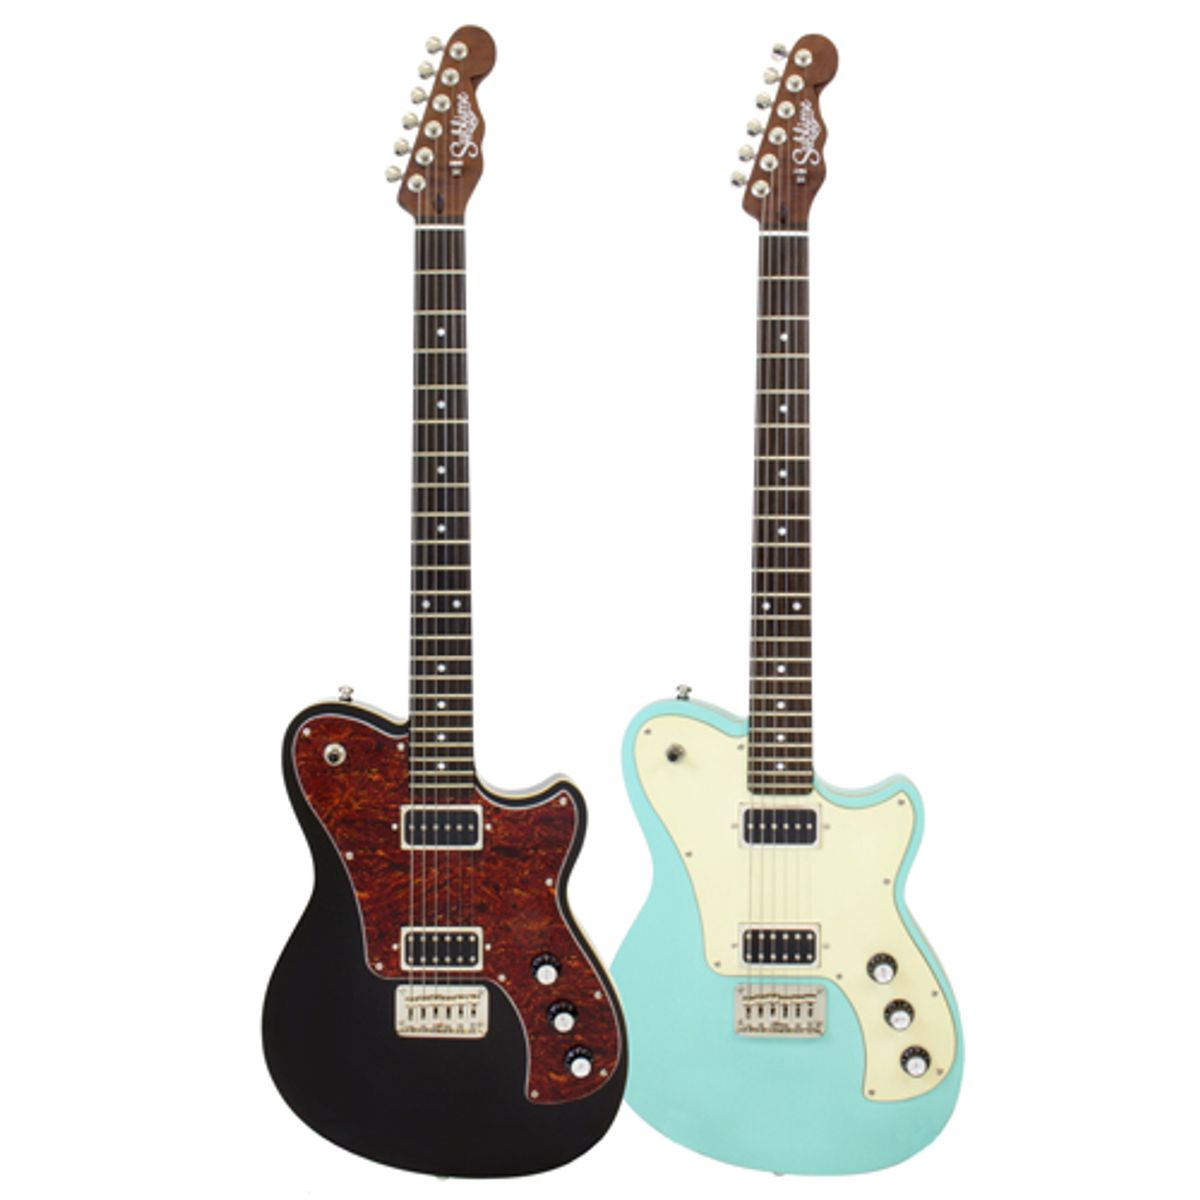 Sublime Guitars Releases the Tomcat Deluxe